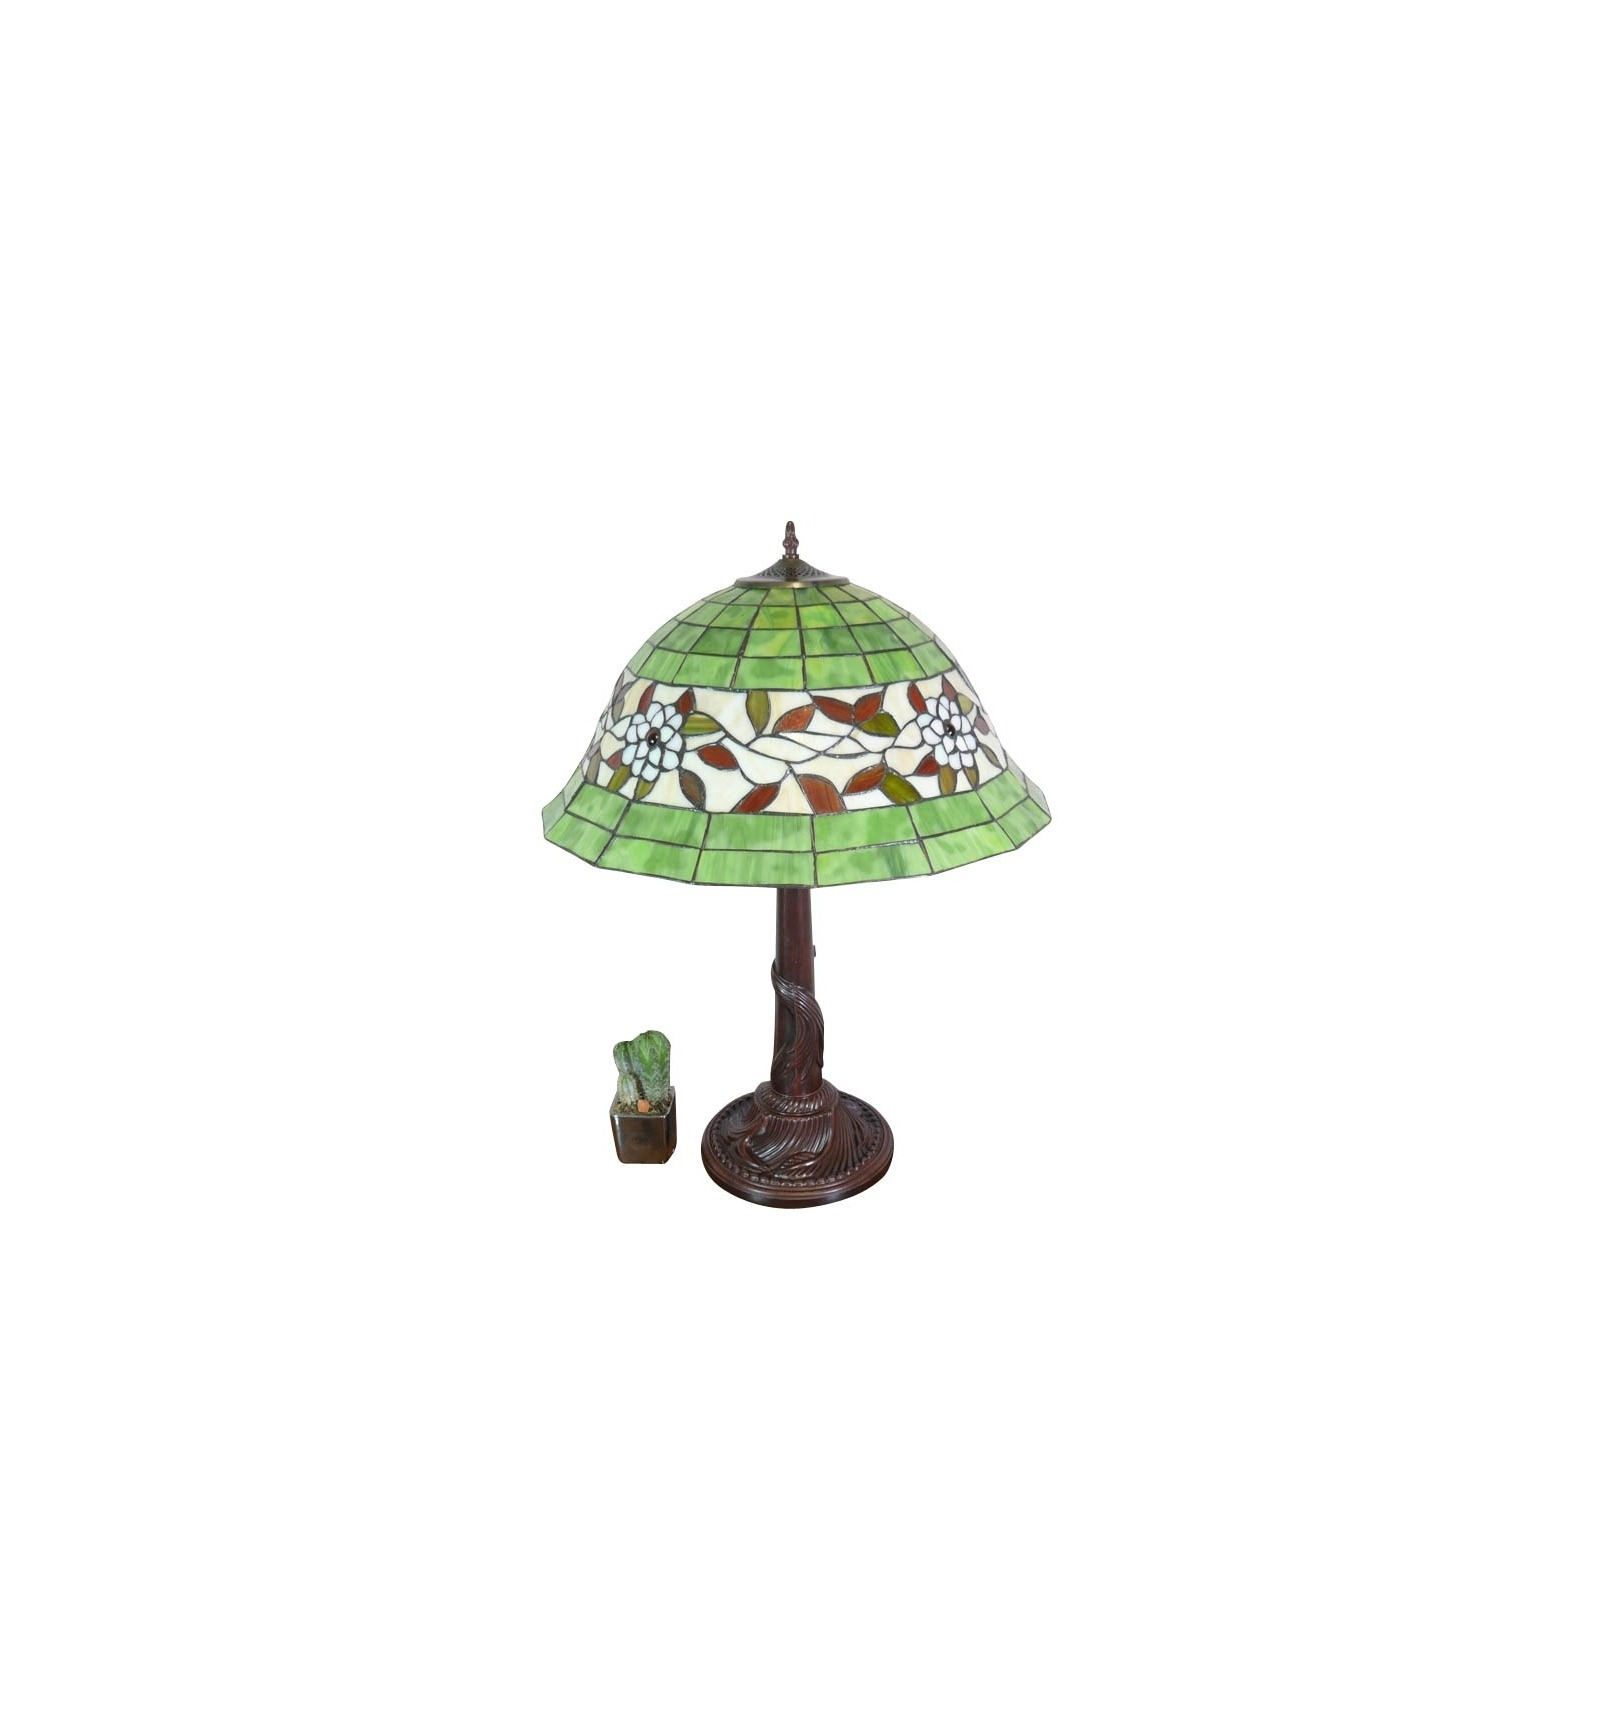 lampe tiffany au fond blanc et vert art deco. Black Bedroom Furniture Sets. Home Design Ideas